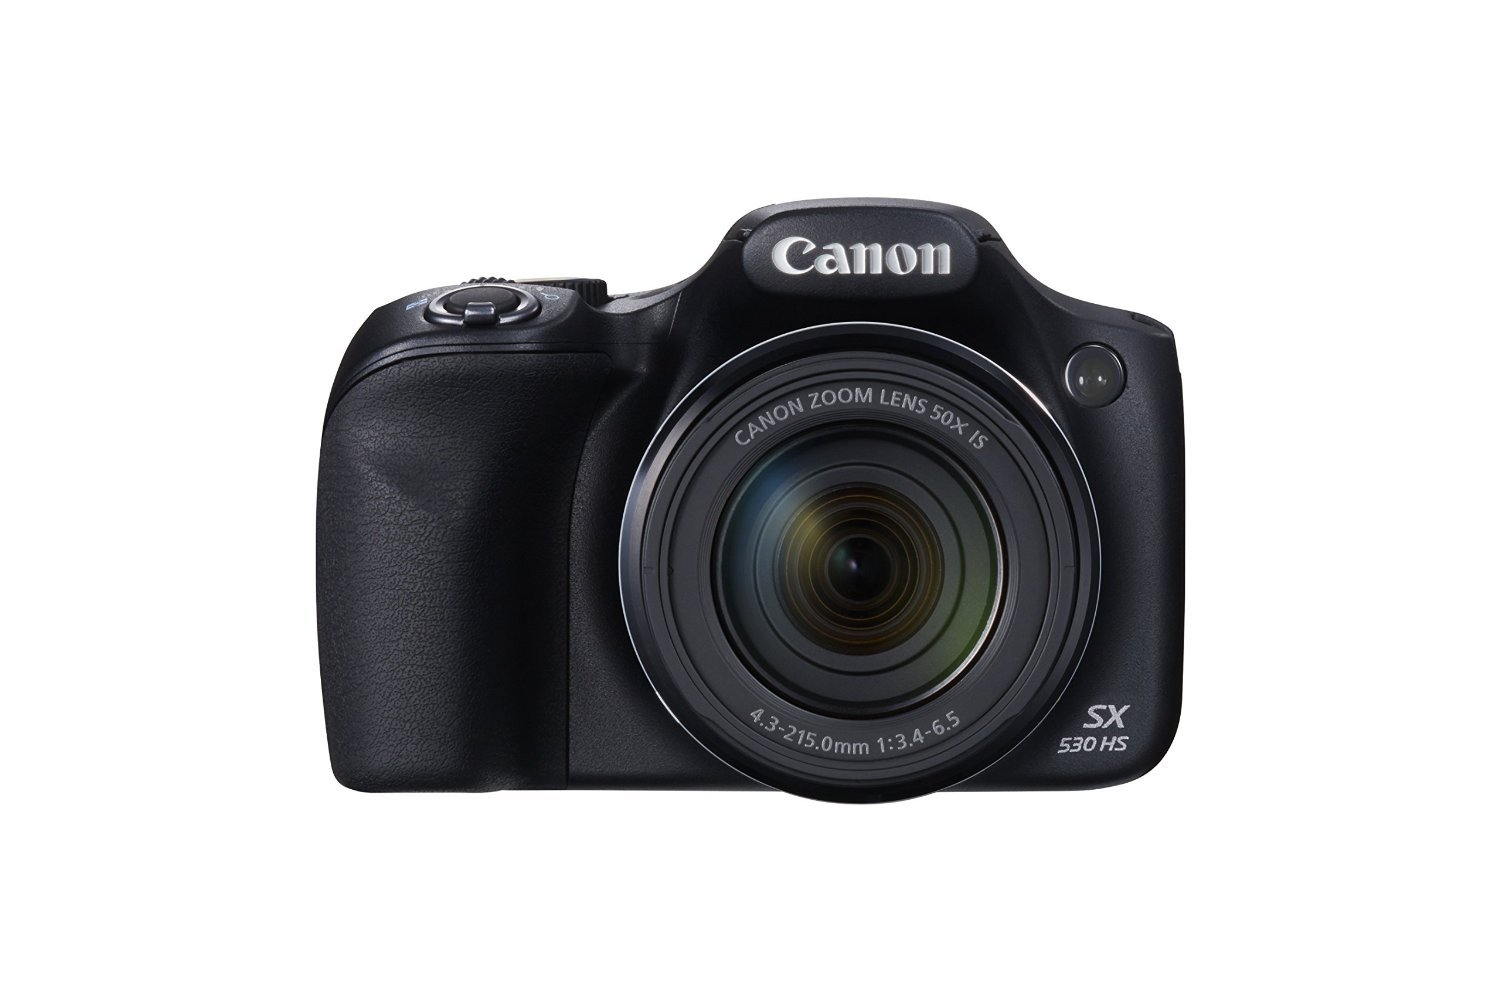 Canon PowerShot SX530 HS 16.0 MP CMOS Digital Camera with 50x Optical IS Zoom, Built-in WiFi, 3-Inch LCD and HD 1080p Video - Black (Certified Refurbished)